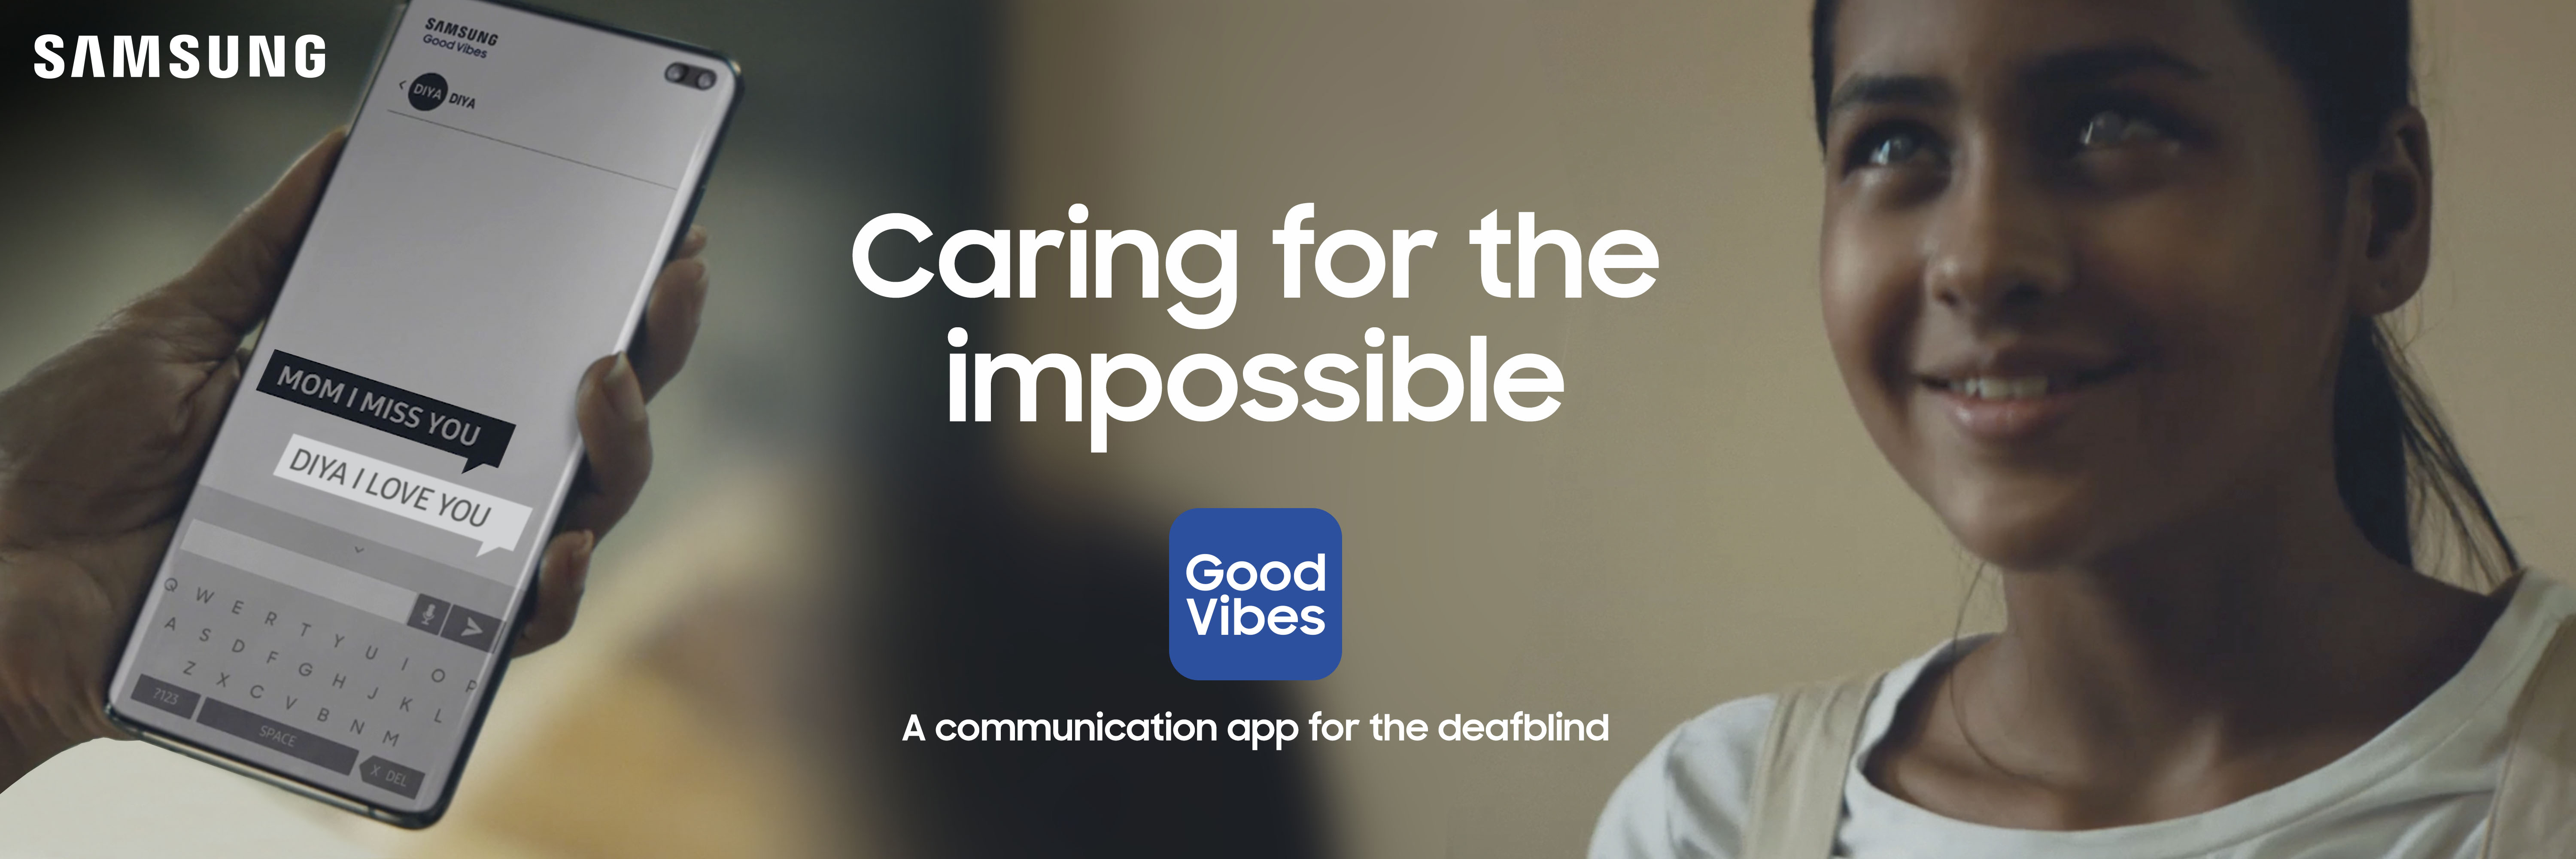 Samsung Good Vibes and Relúmĭno to Brighten Up Lives of the Deafblind and Vision Impaired